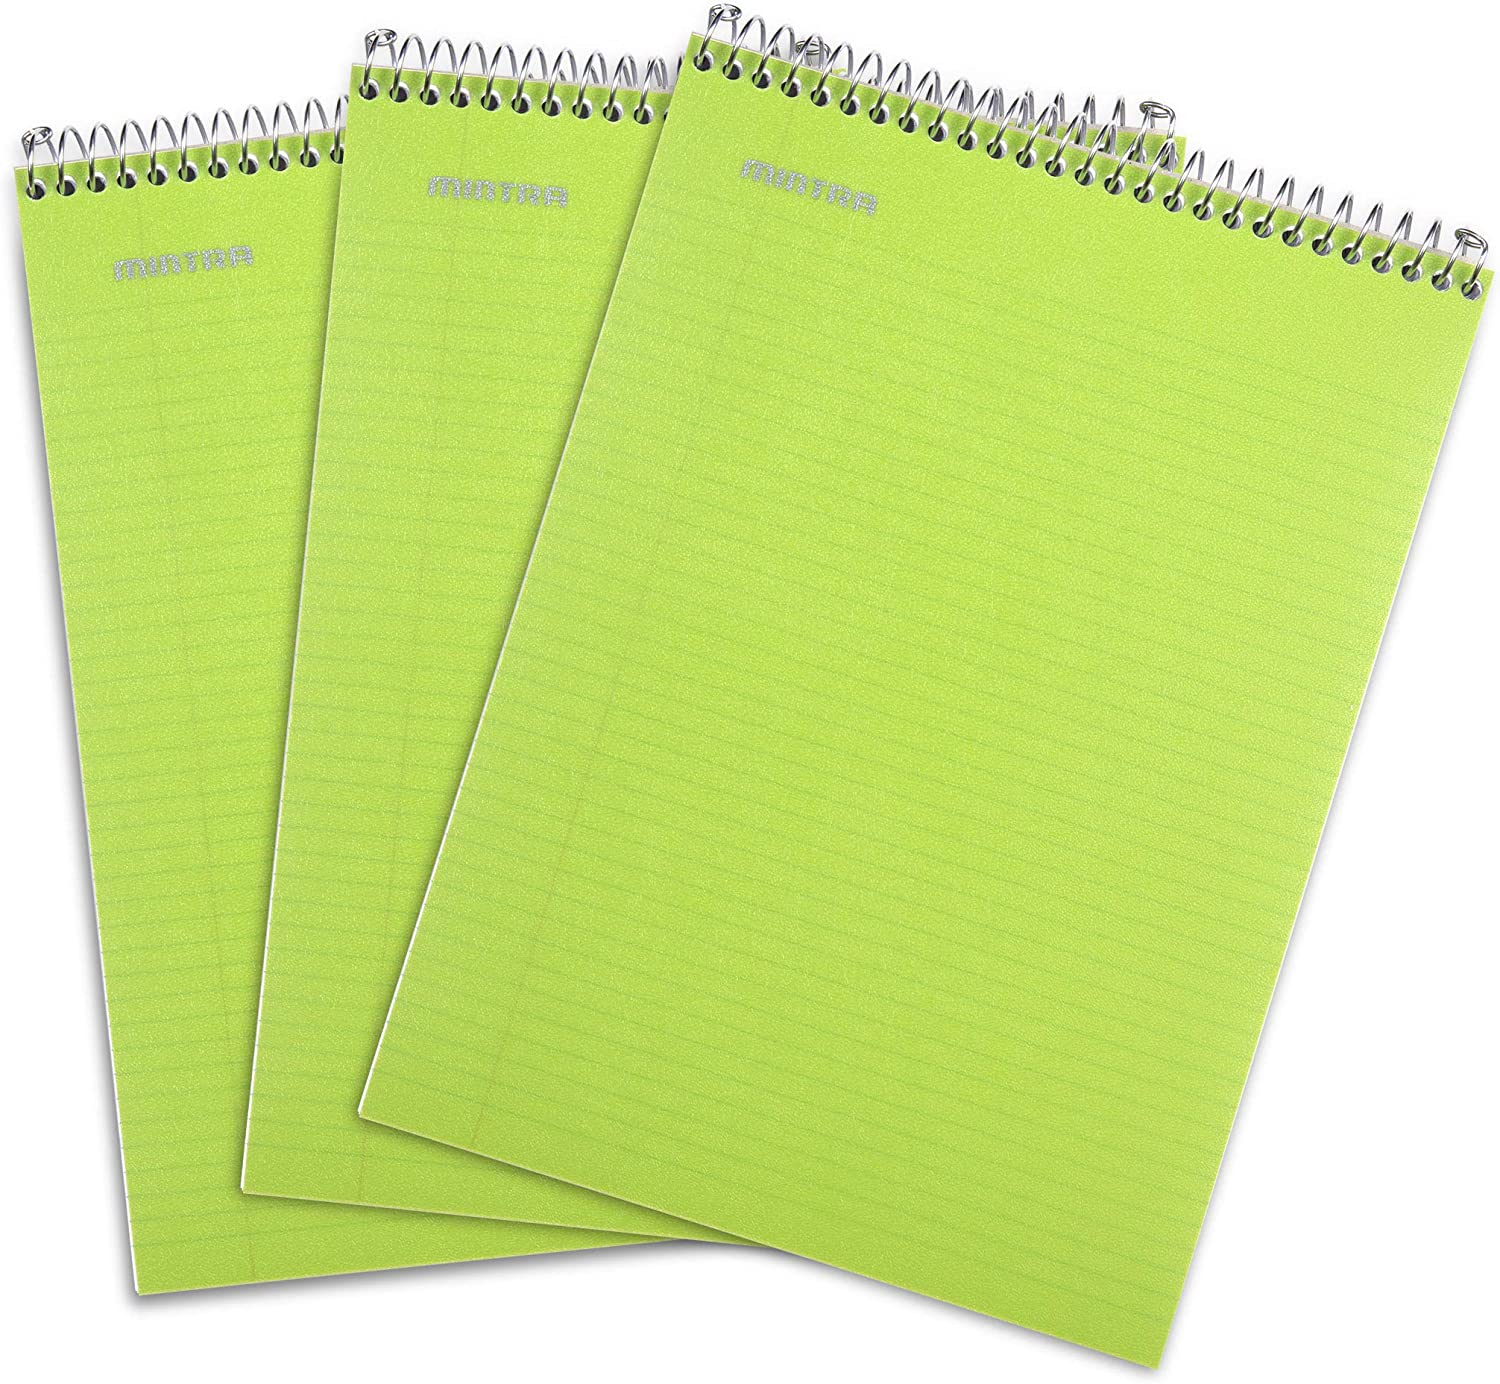 Mintra Office Top Bound Durable Spiral Notebooks - Strong Back, Left-Handed, 100 Sheets, Moisture Resistant Cover, School, Office, Business, Professional (Green, College Ruled) 3 Pack